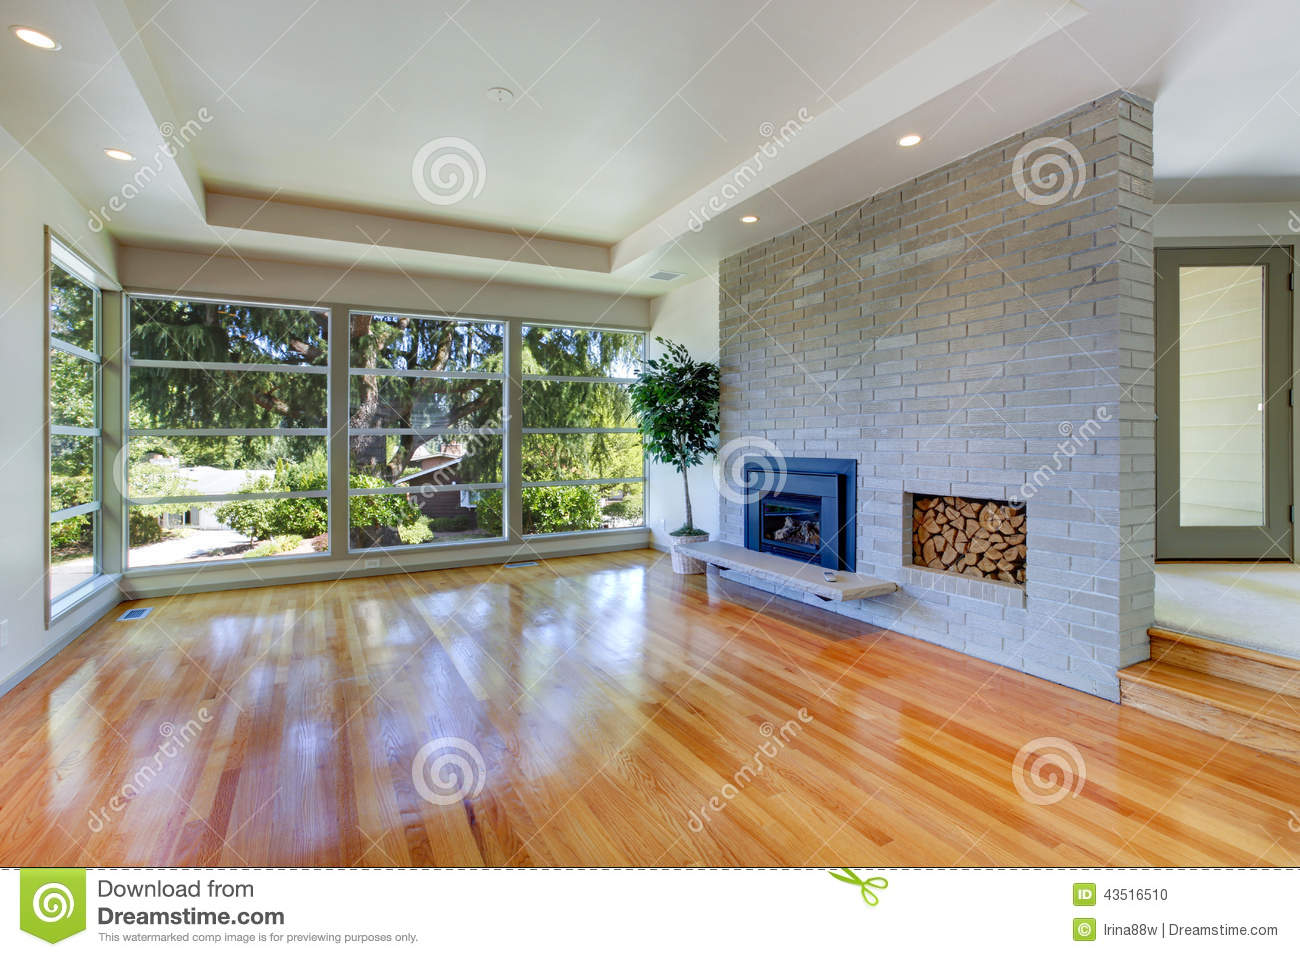 Empty house interior. Living room with glass wall and brick wall